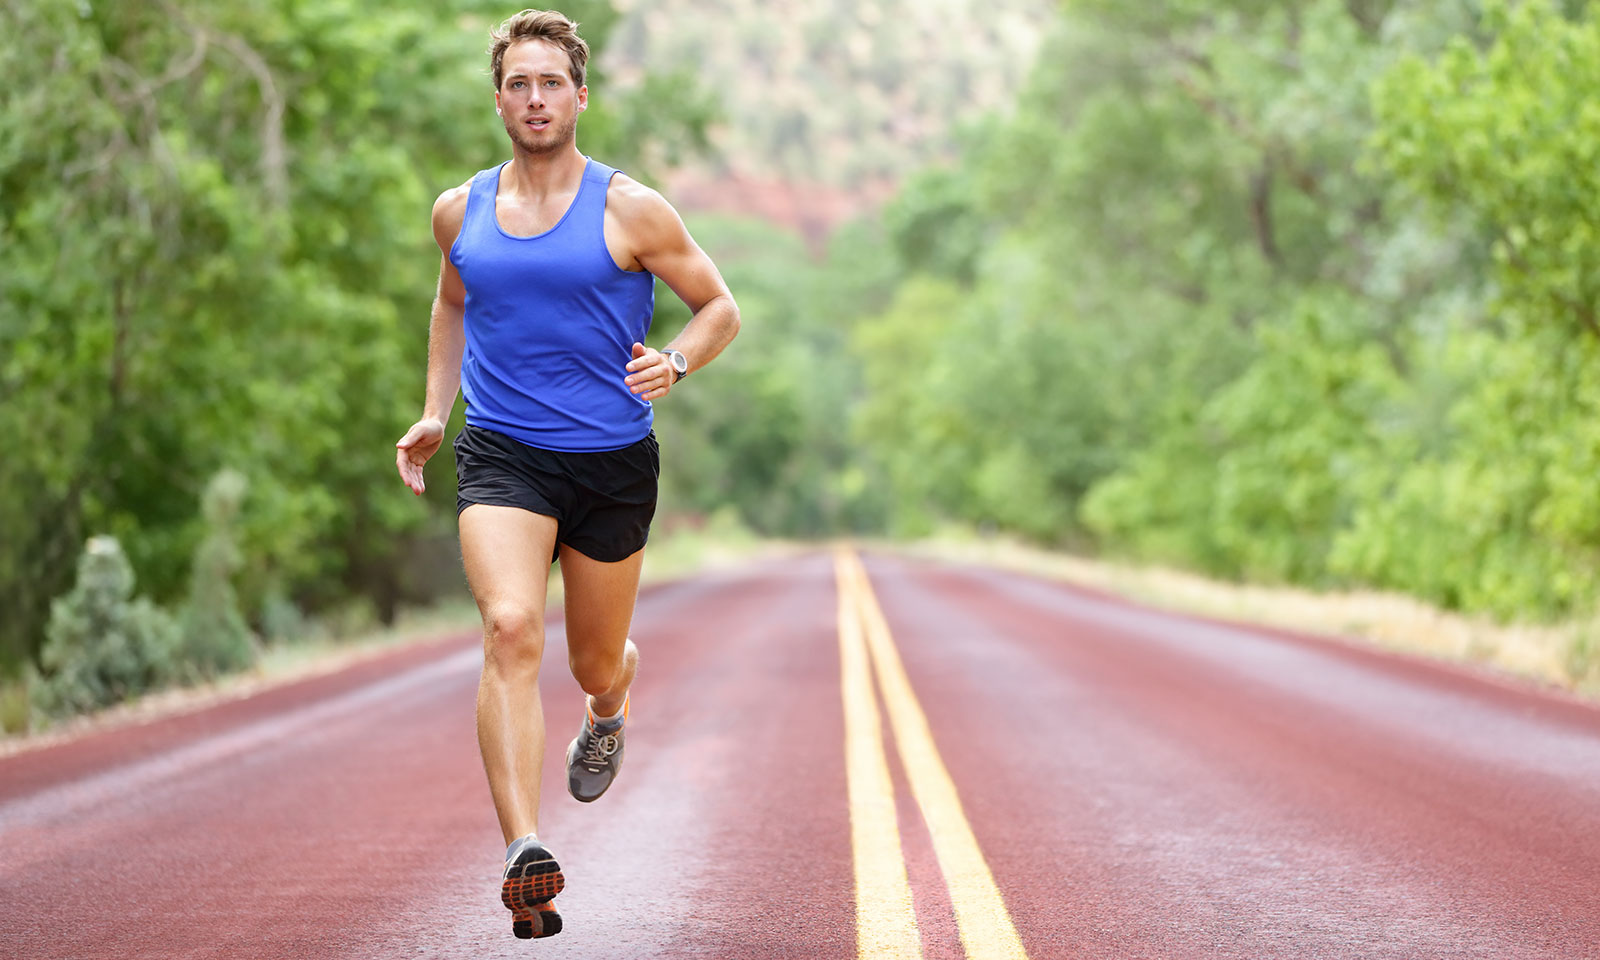 Top 4 Amino Acid Supplements For Runners